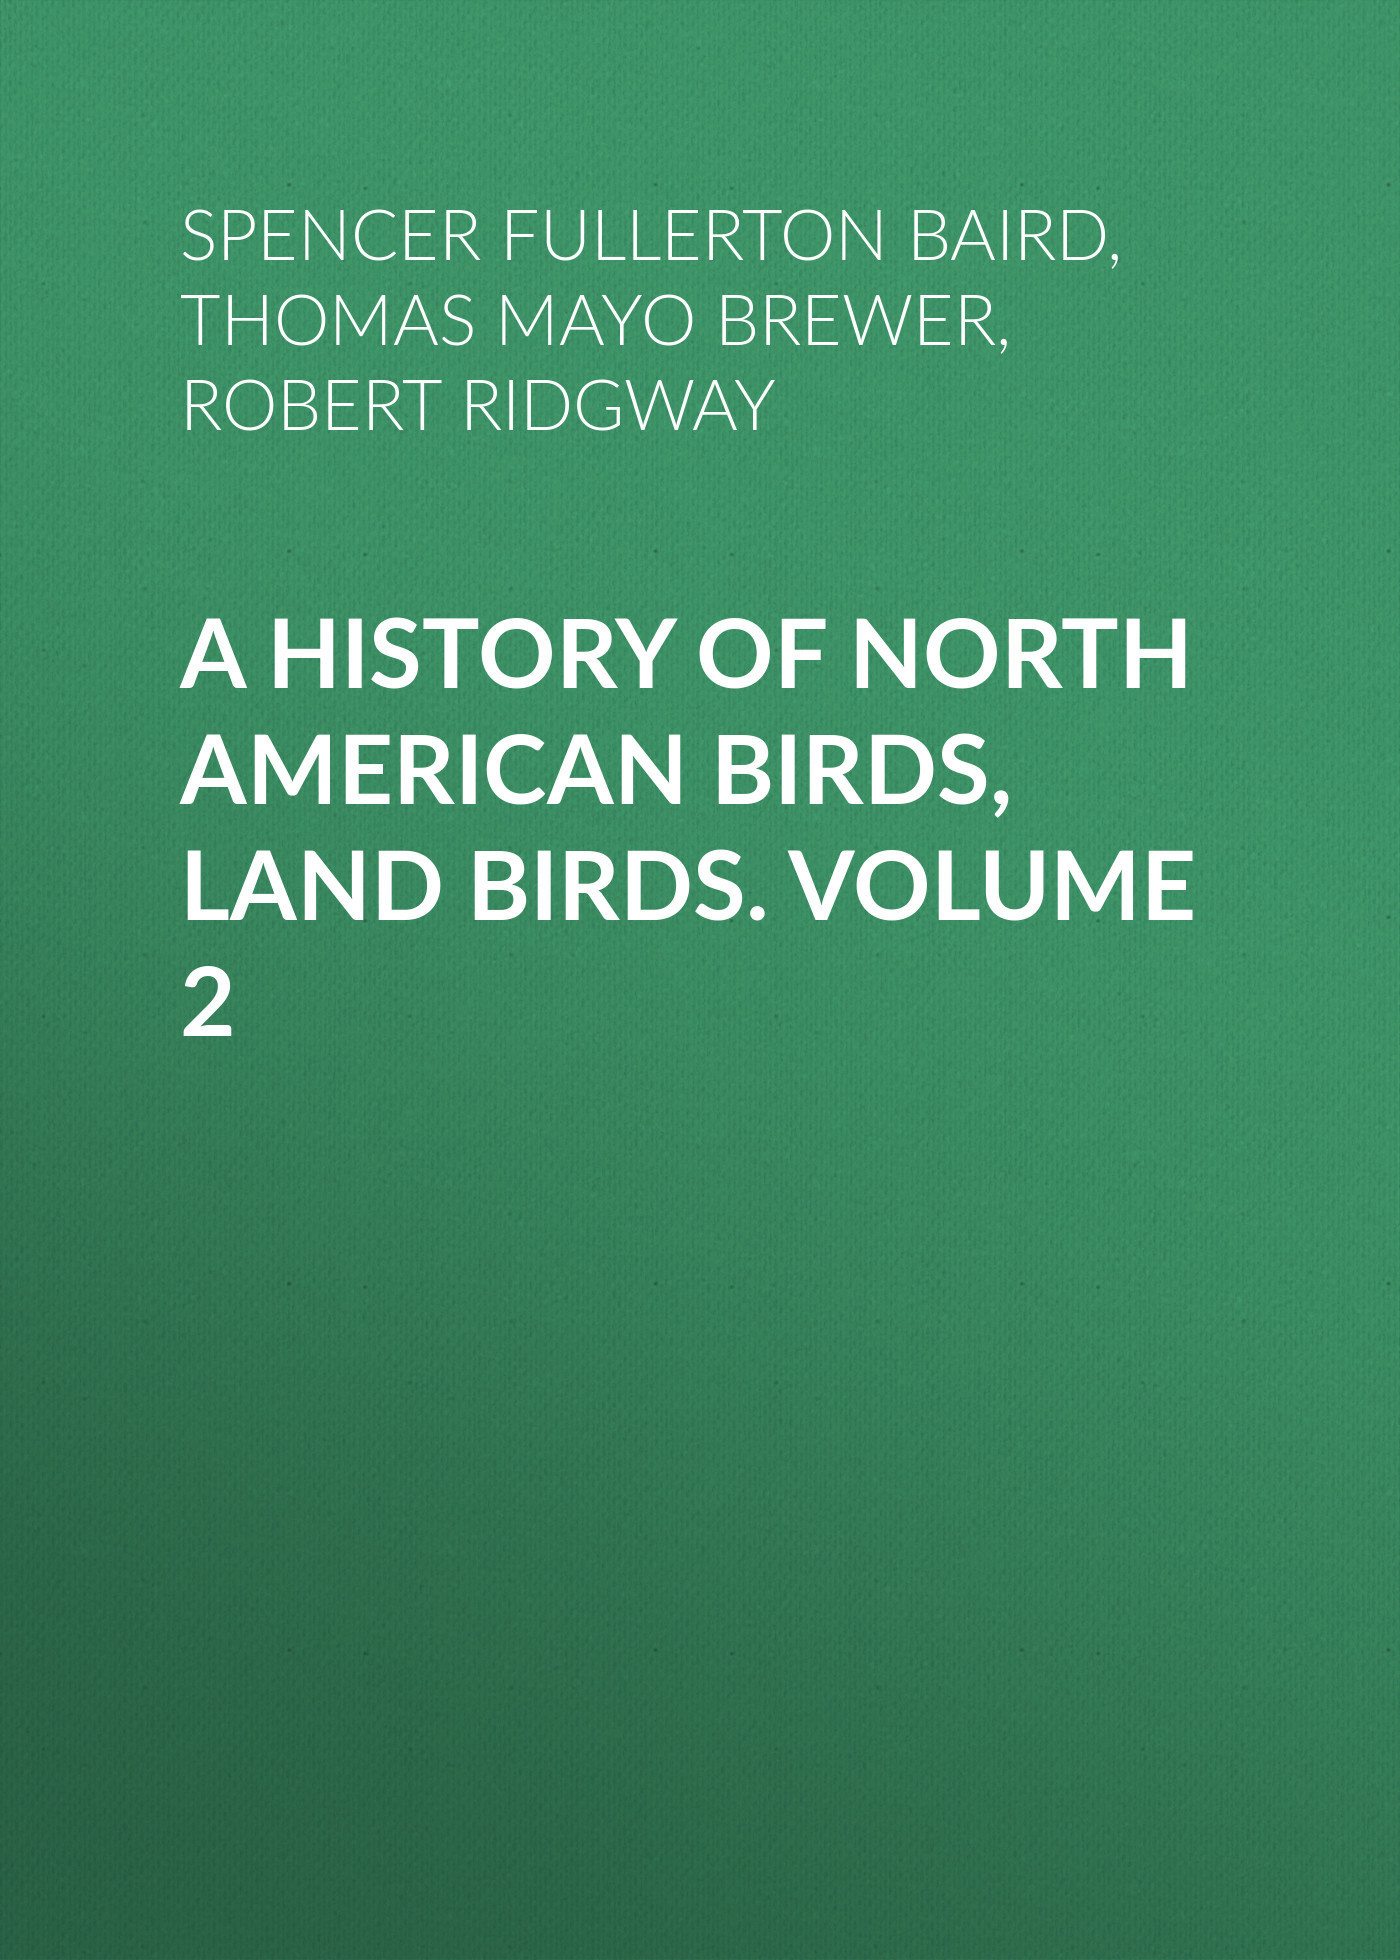 Robert Ridgway A History of North American Birds, Land Birds. Volume 2